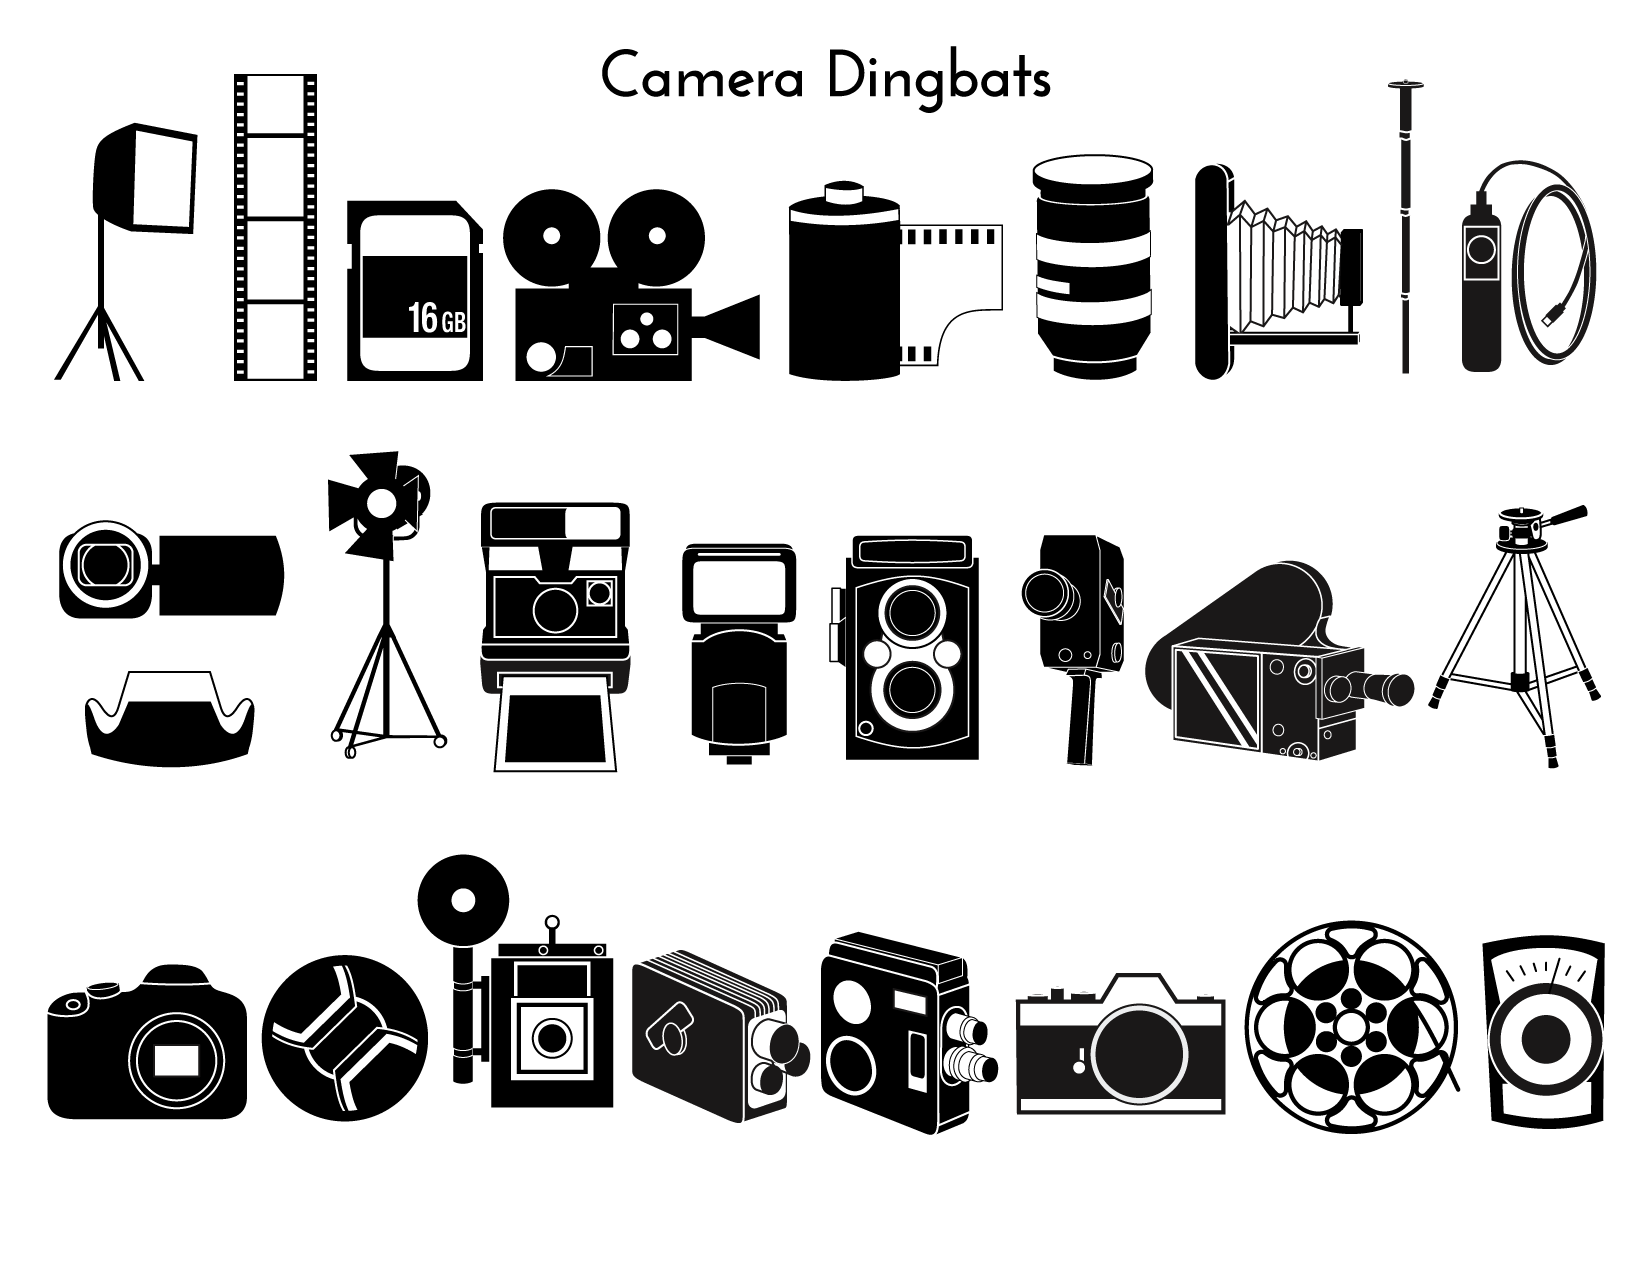 A camera dingbat family